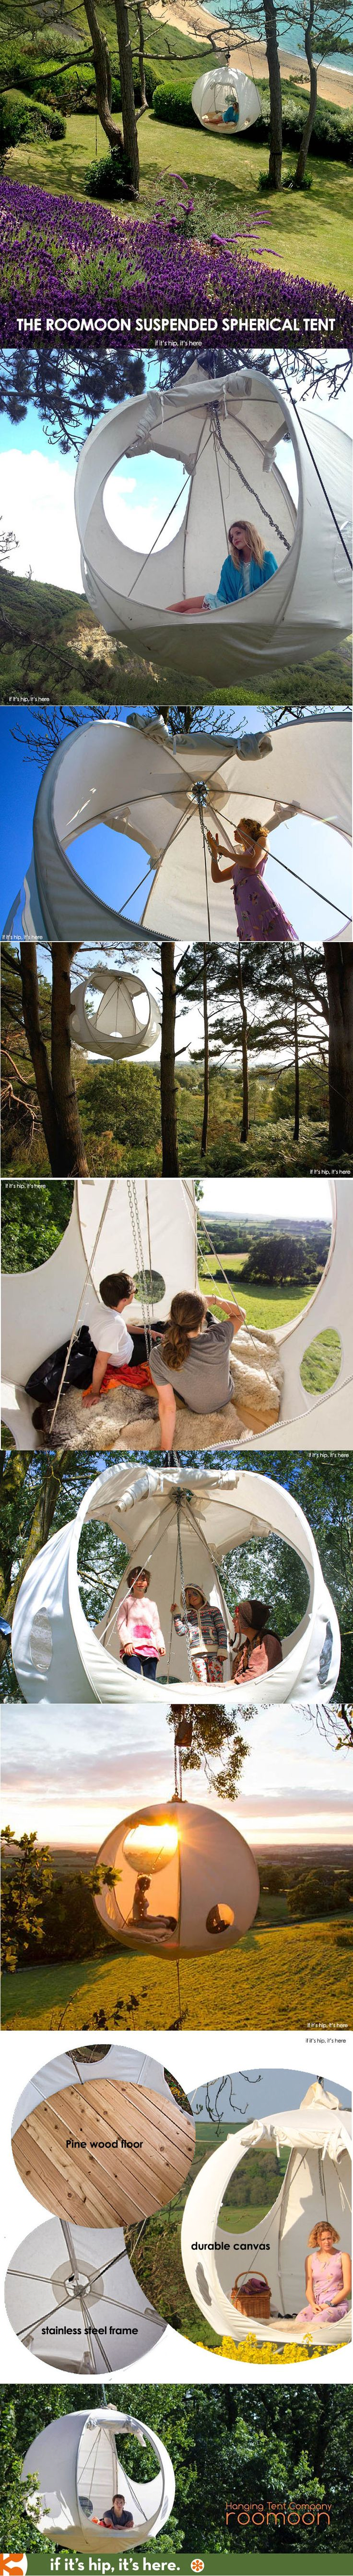 The Roomoon durable round canvas hanging tent with steel frame, pine wood floor and other options at if it's hip, it's here.